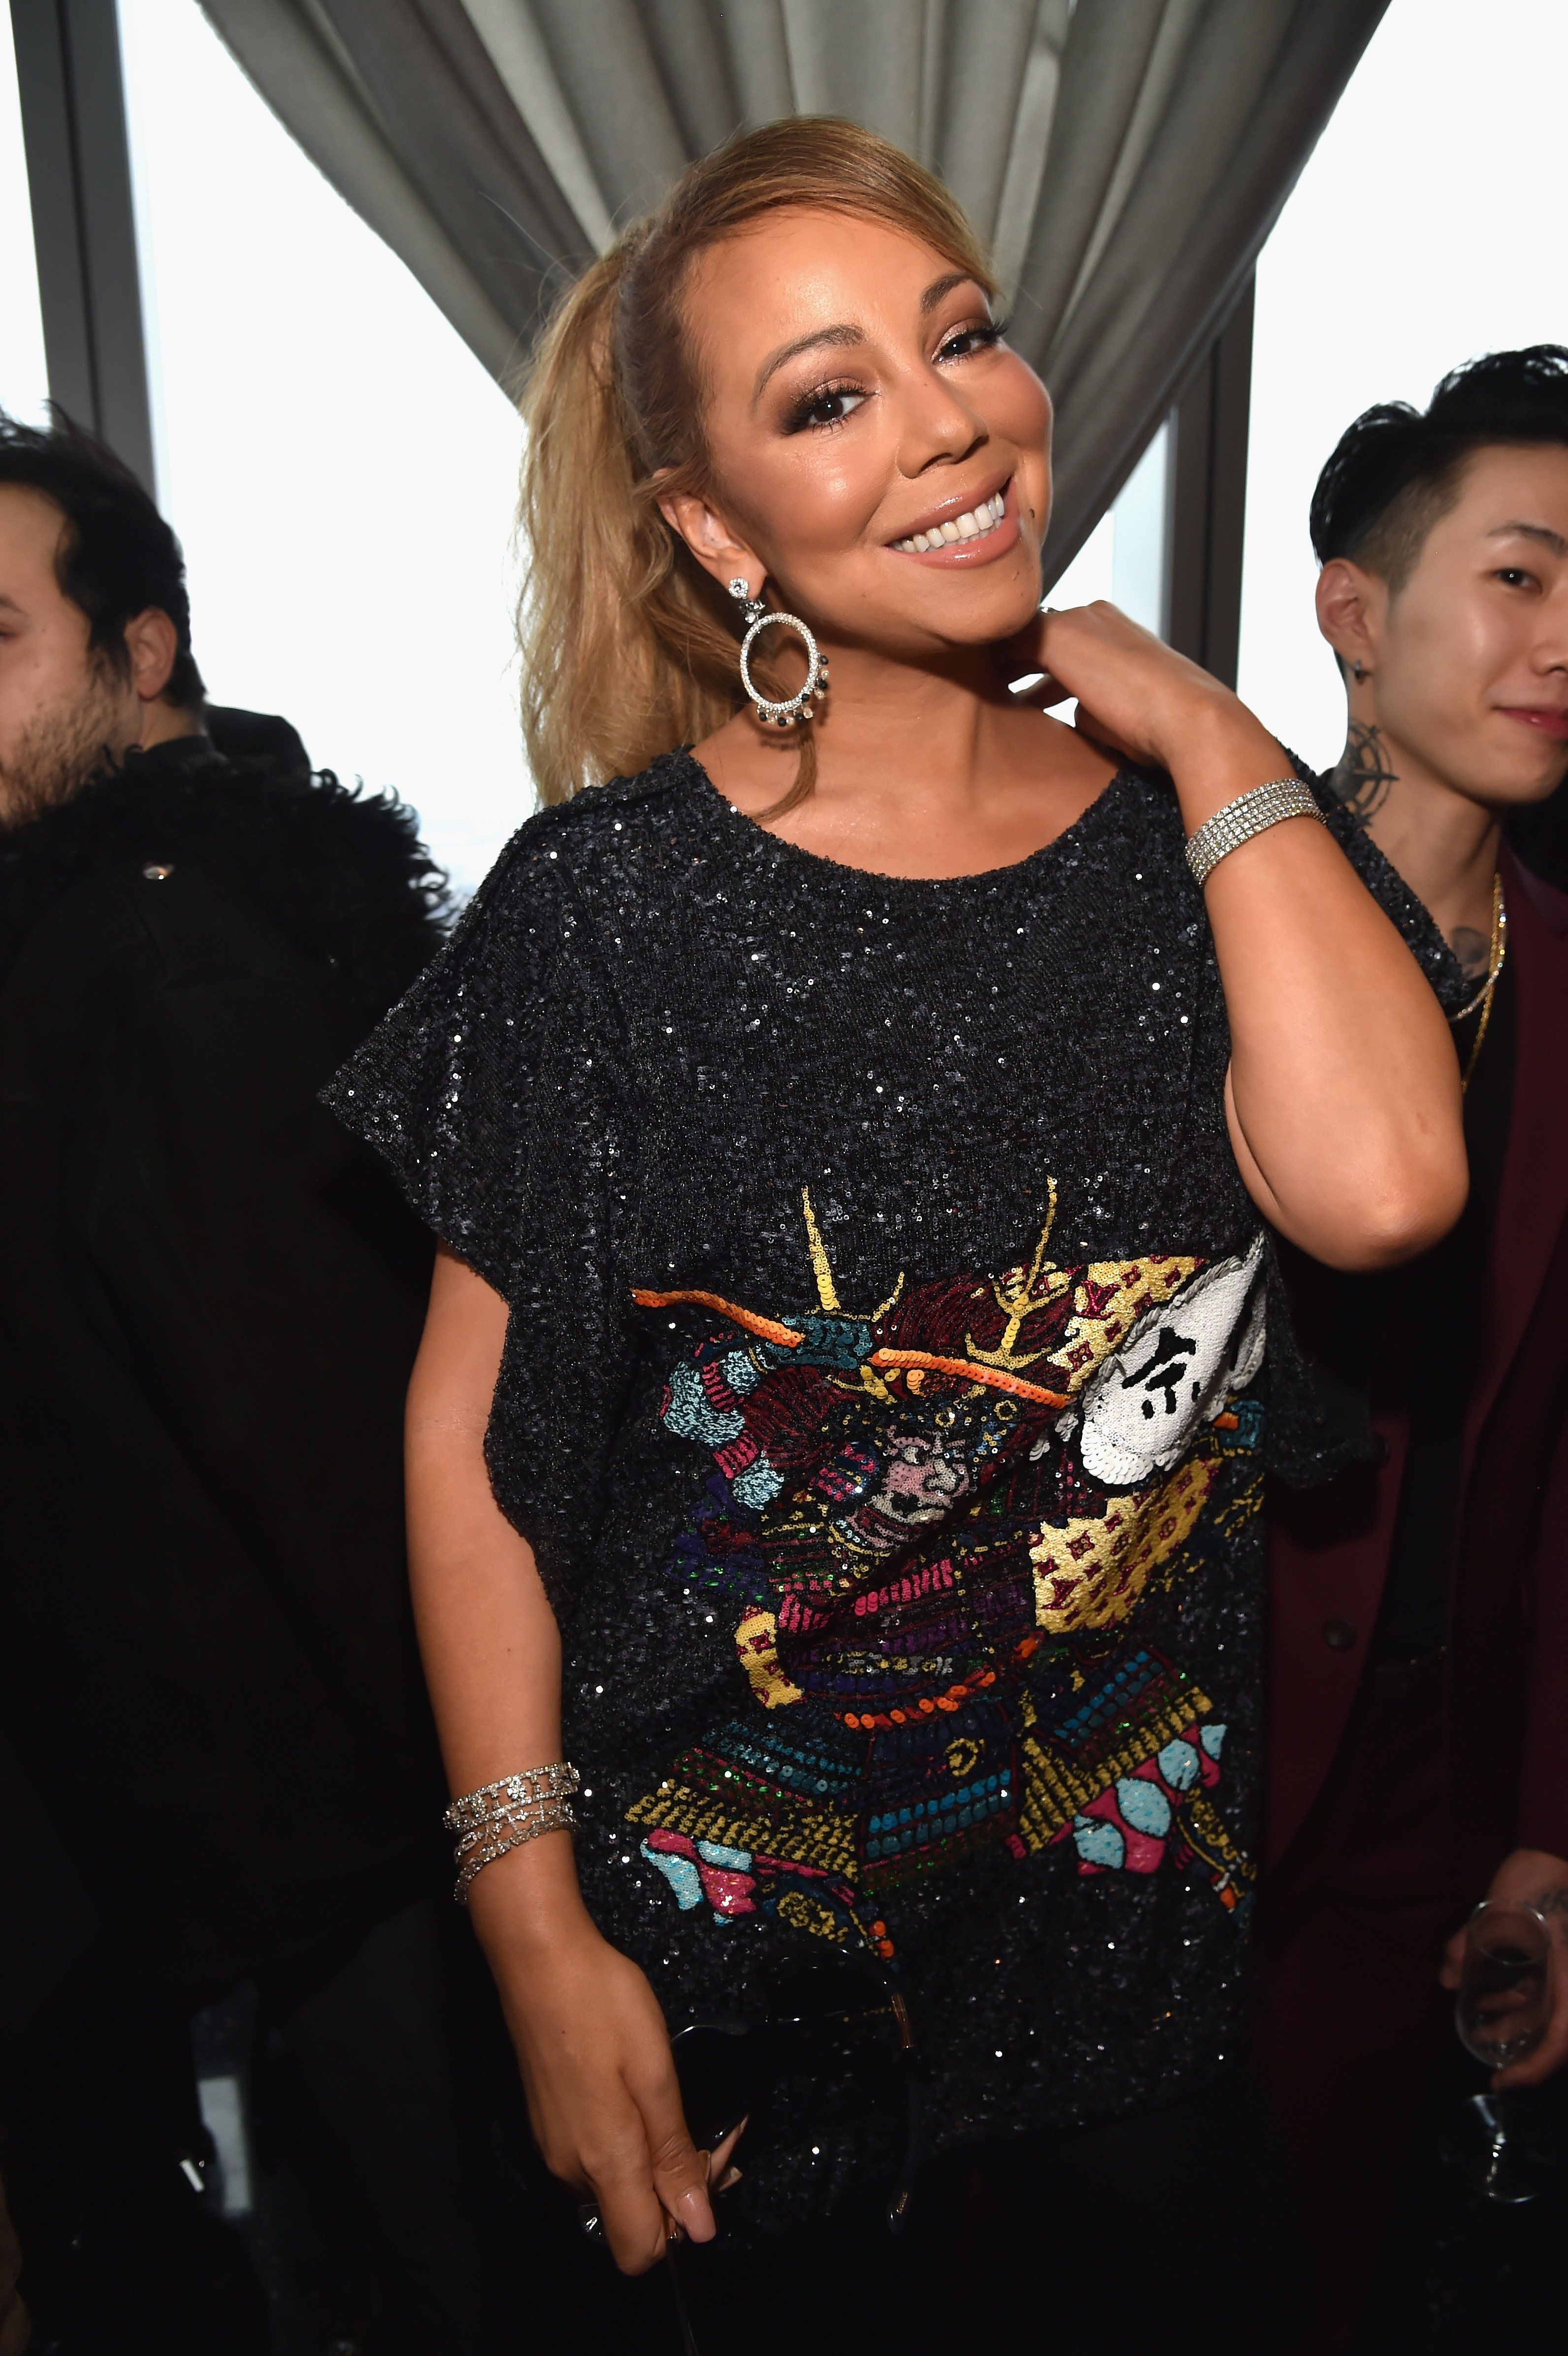 Mariah Carey attends Roc Nation THE BRUNCH at One World Observatory on January 27, 2018, in New York City. | Source: Getty Images.